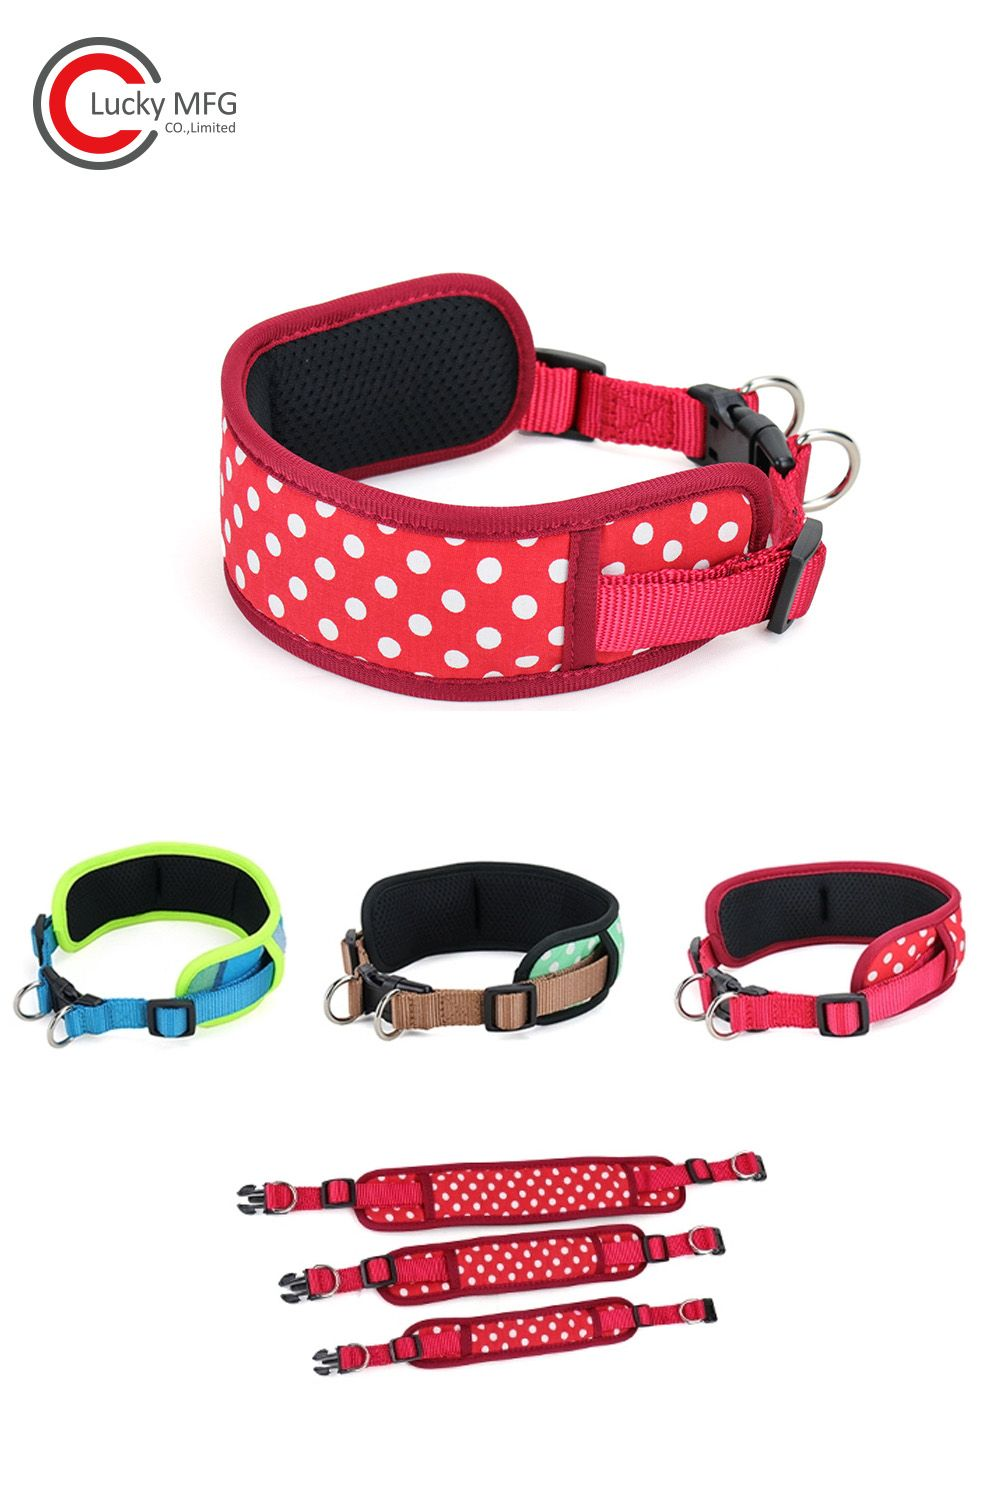 Adjustable Soft Breathable Wide Double D Ring Dog Collar